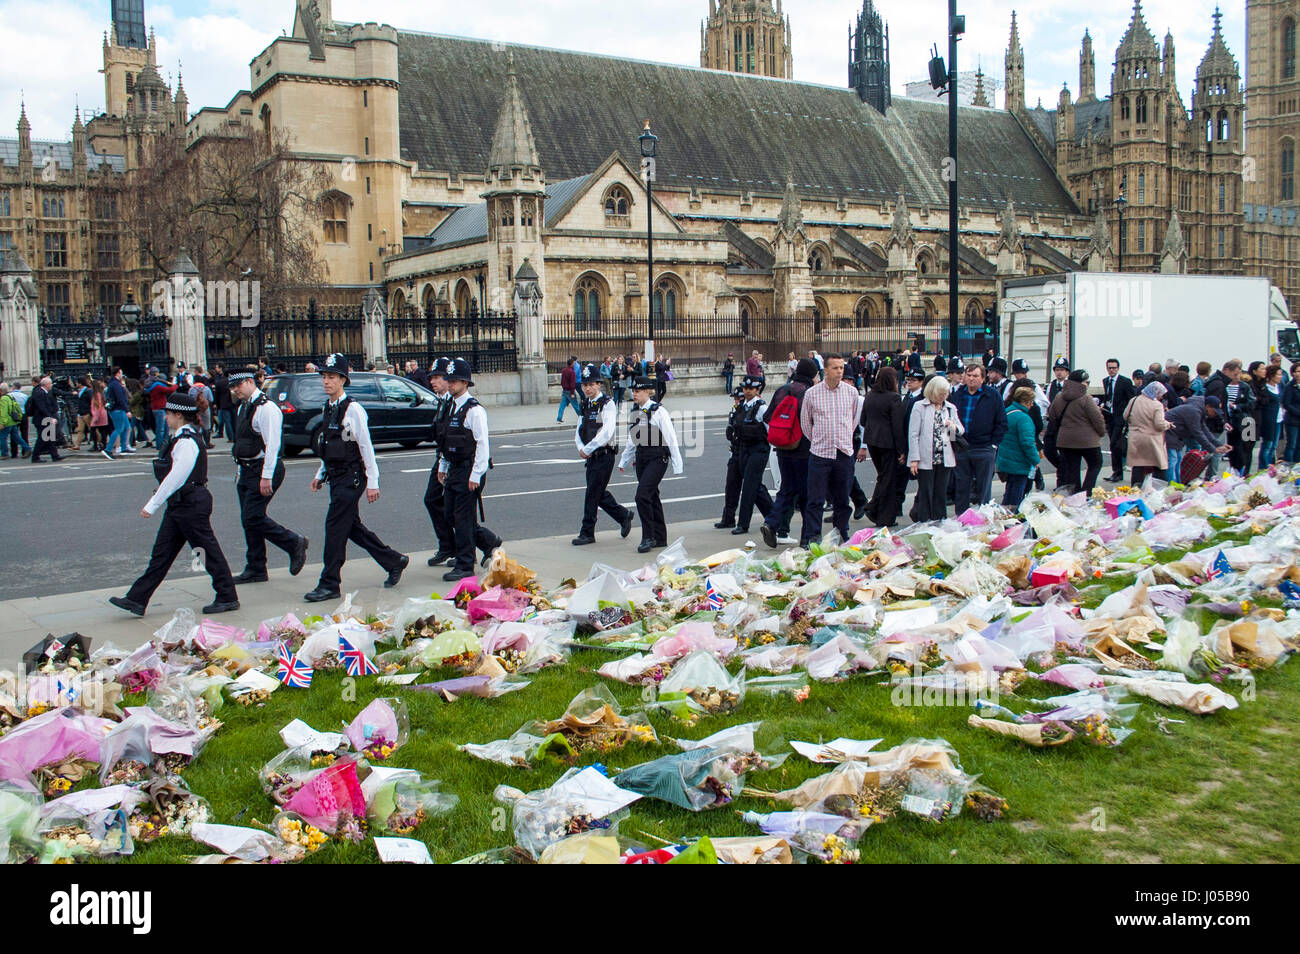 London, UK. 10th Apr, 2017. Police from around the country attended the funeral. Crowds who watched the funeral - Stock Image